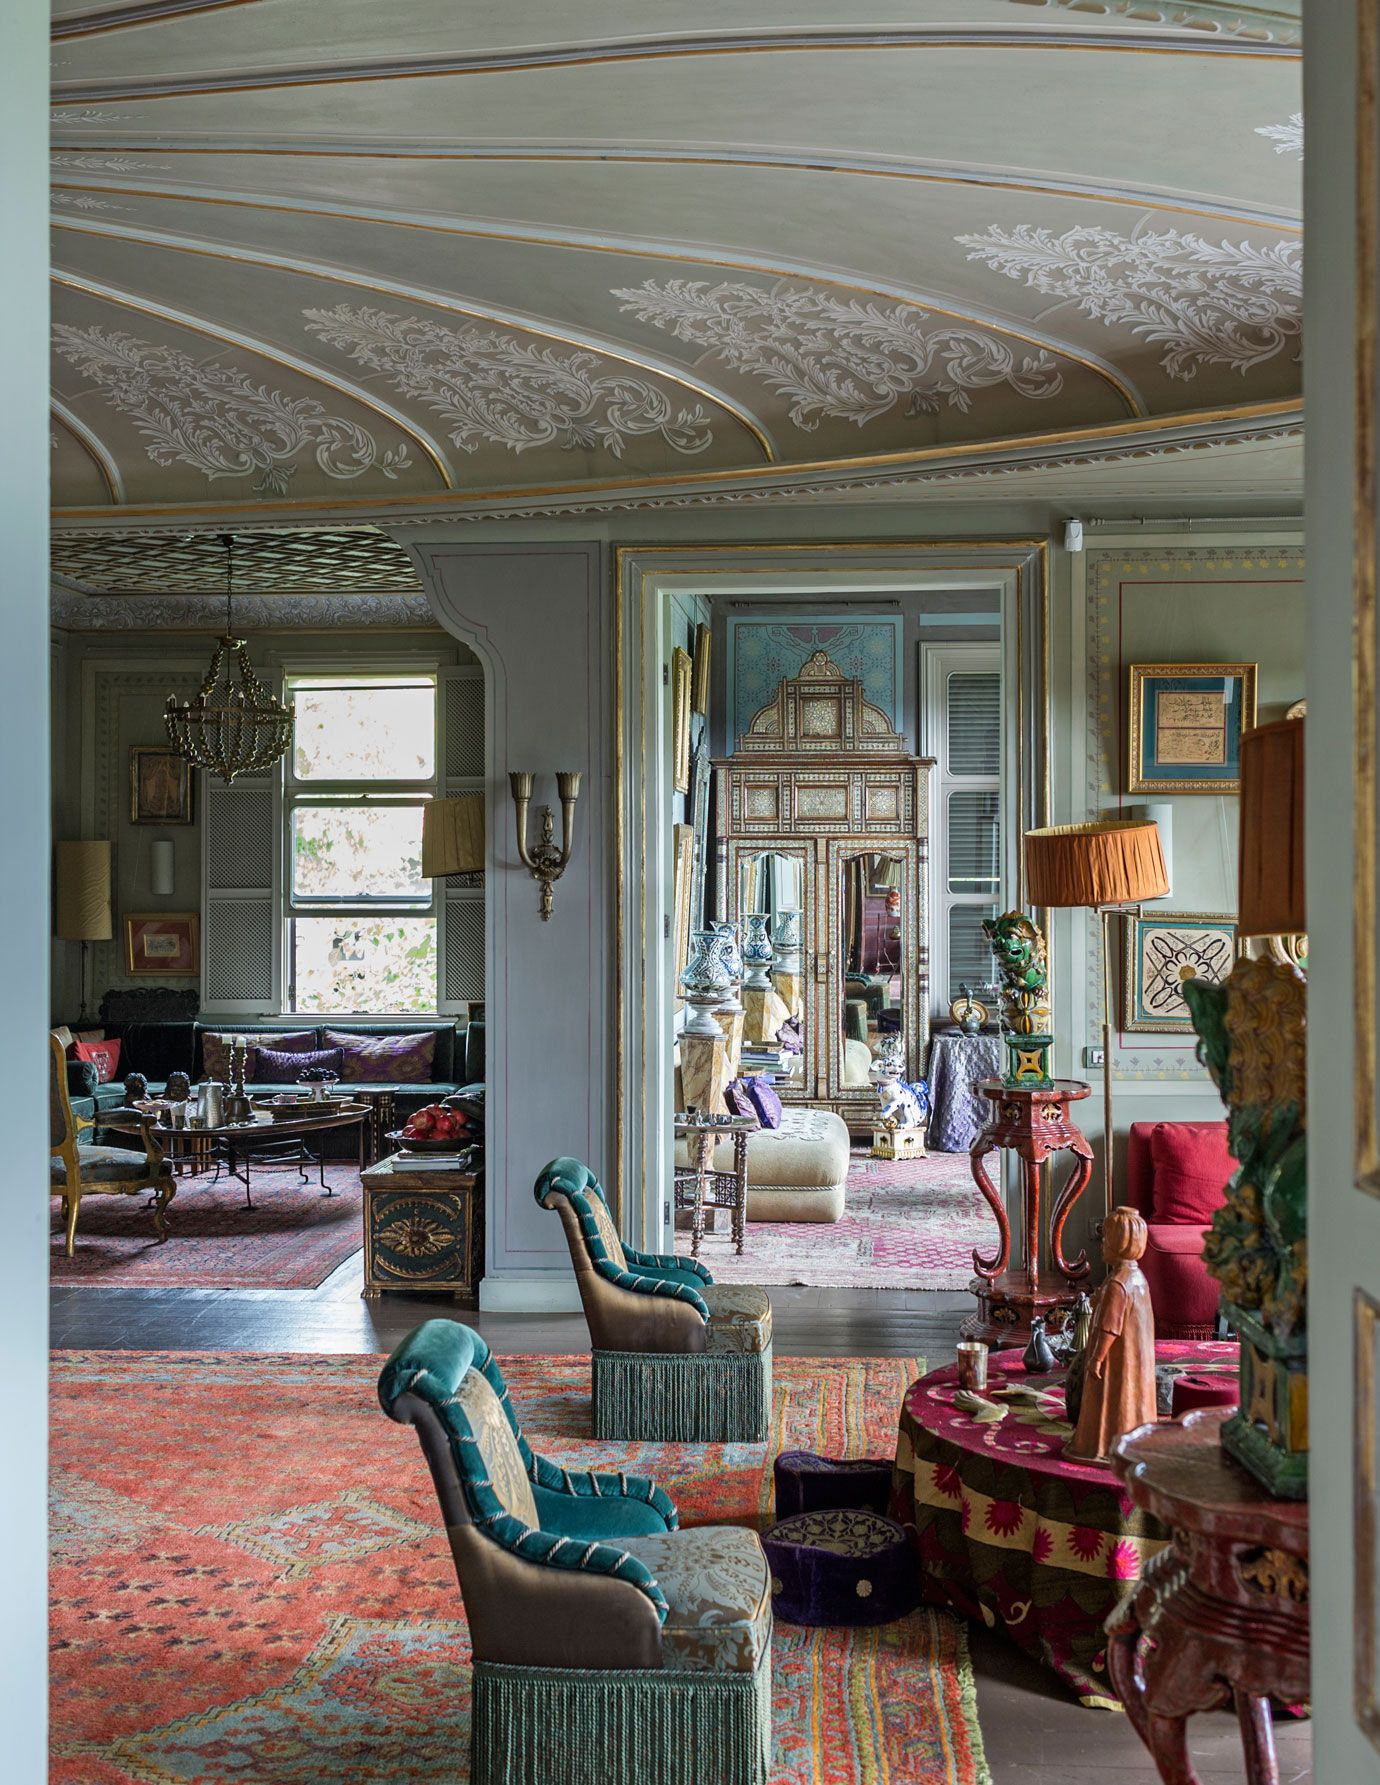 The Most Beautiful Home In Istanbul | Home decor, Home, Decor